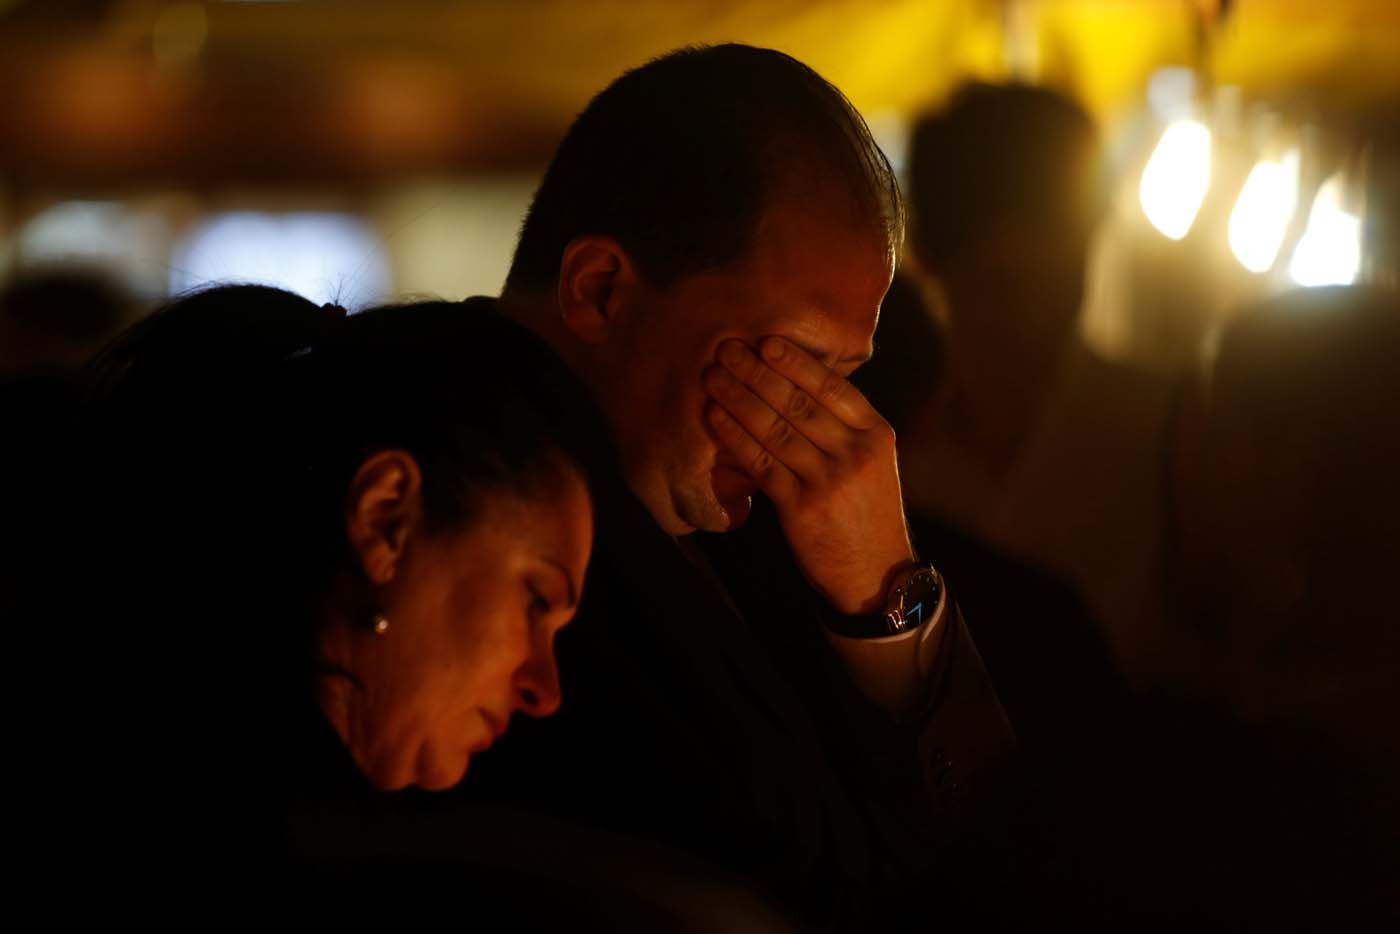 People react during a silent candlelight vigil to protest against the assassination of investigative journalist Daphne Caruana Galizia in a car bomb attack, in St Julian's, Malta, October 16, 2017. REUTERS/Darrin Zammit Lupi